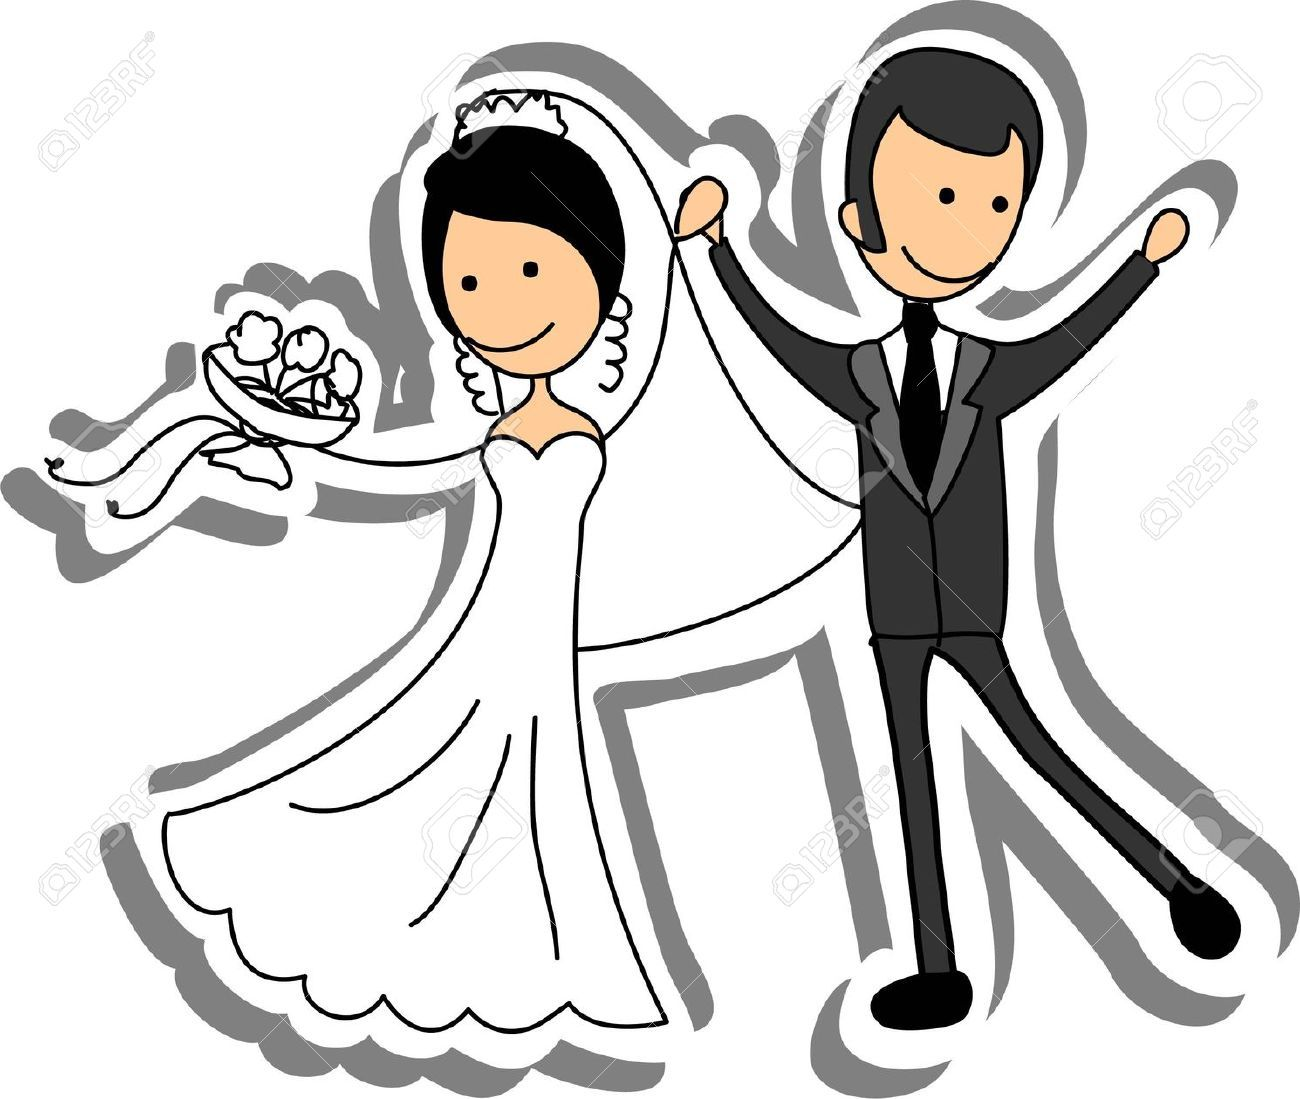 Wedding Picture Bride And Groom In Love Wedding Pictures Wedding Drawing Wedding Illustration